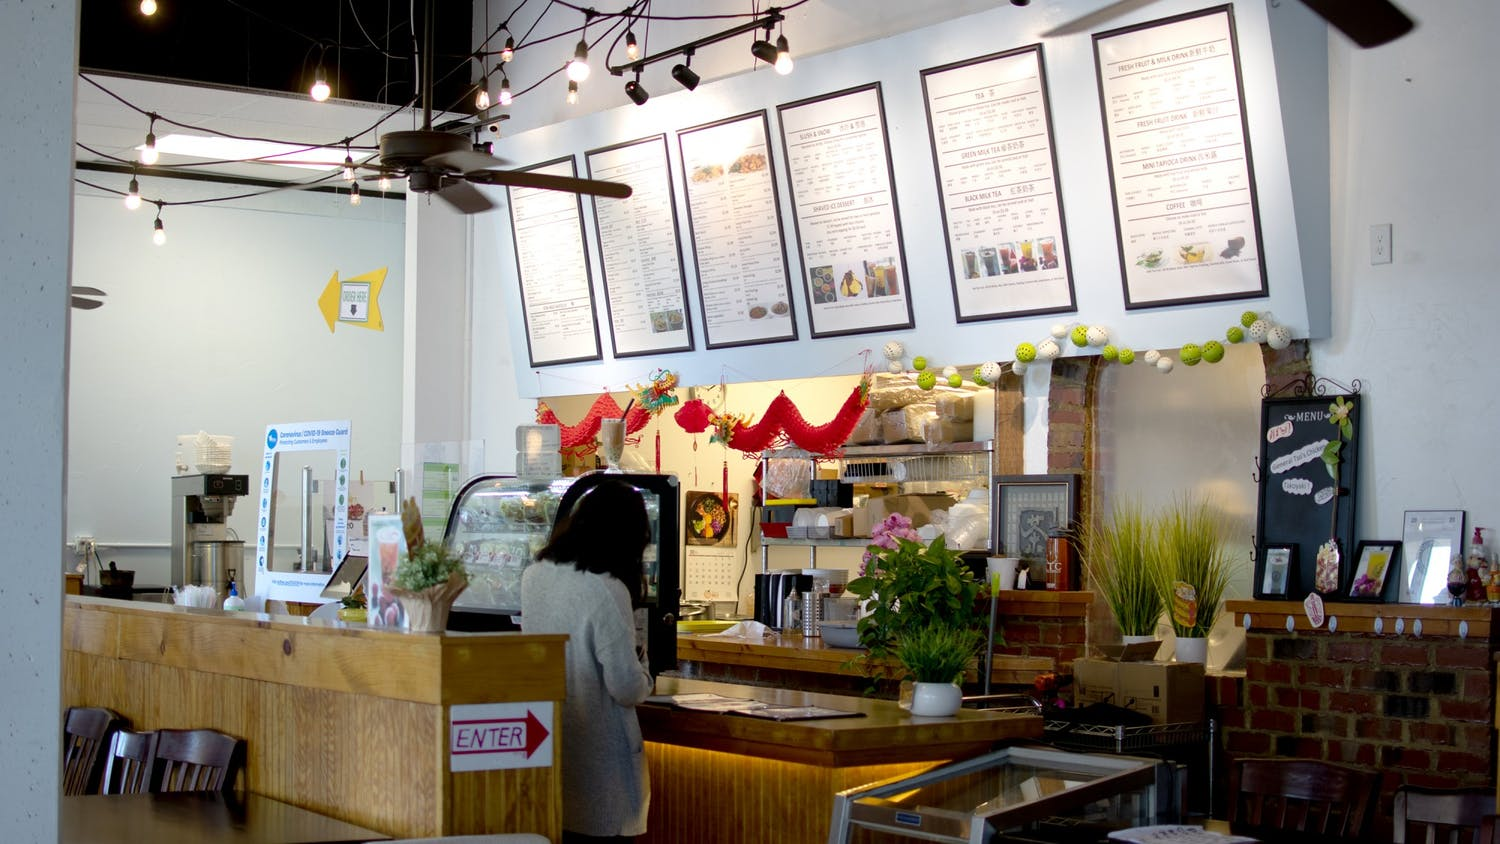 JJ Tea House, a local Taiwanese eatery located off Main Street, is a popular spot for students to study and order authentic Taiwanese food and boba tea.